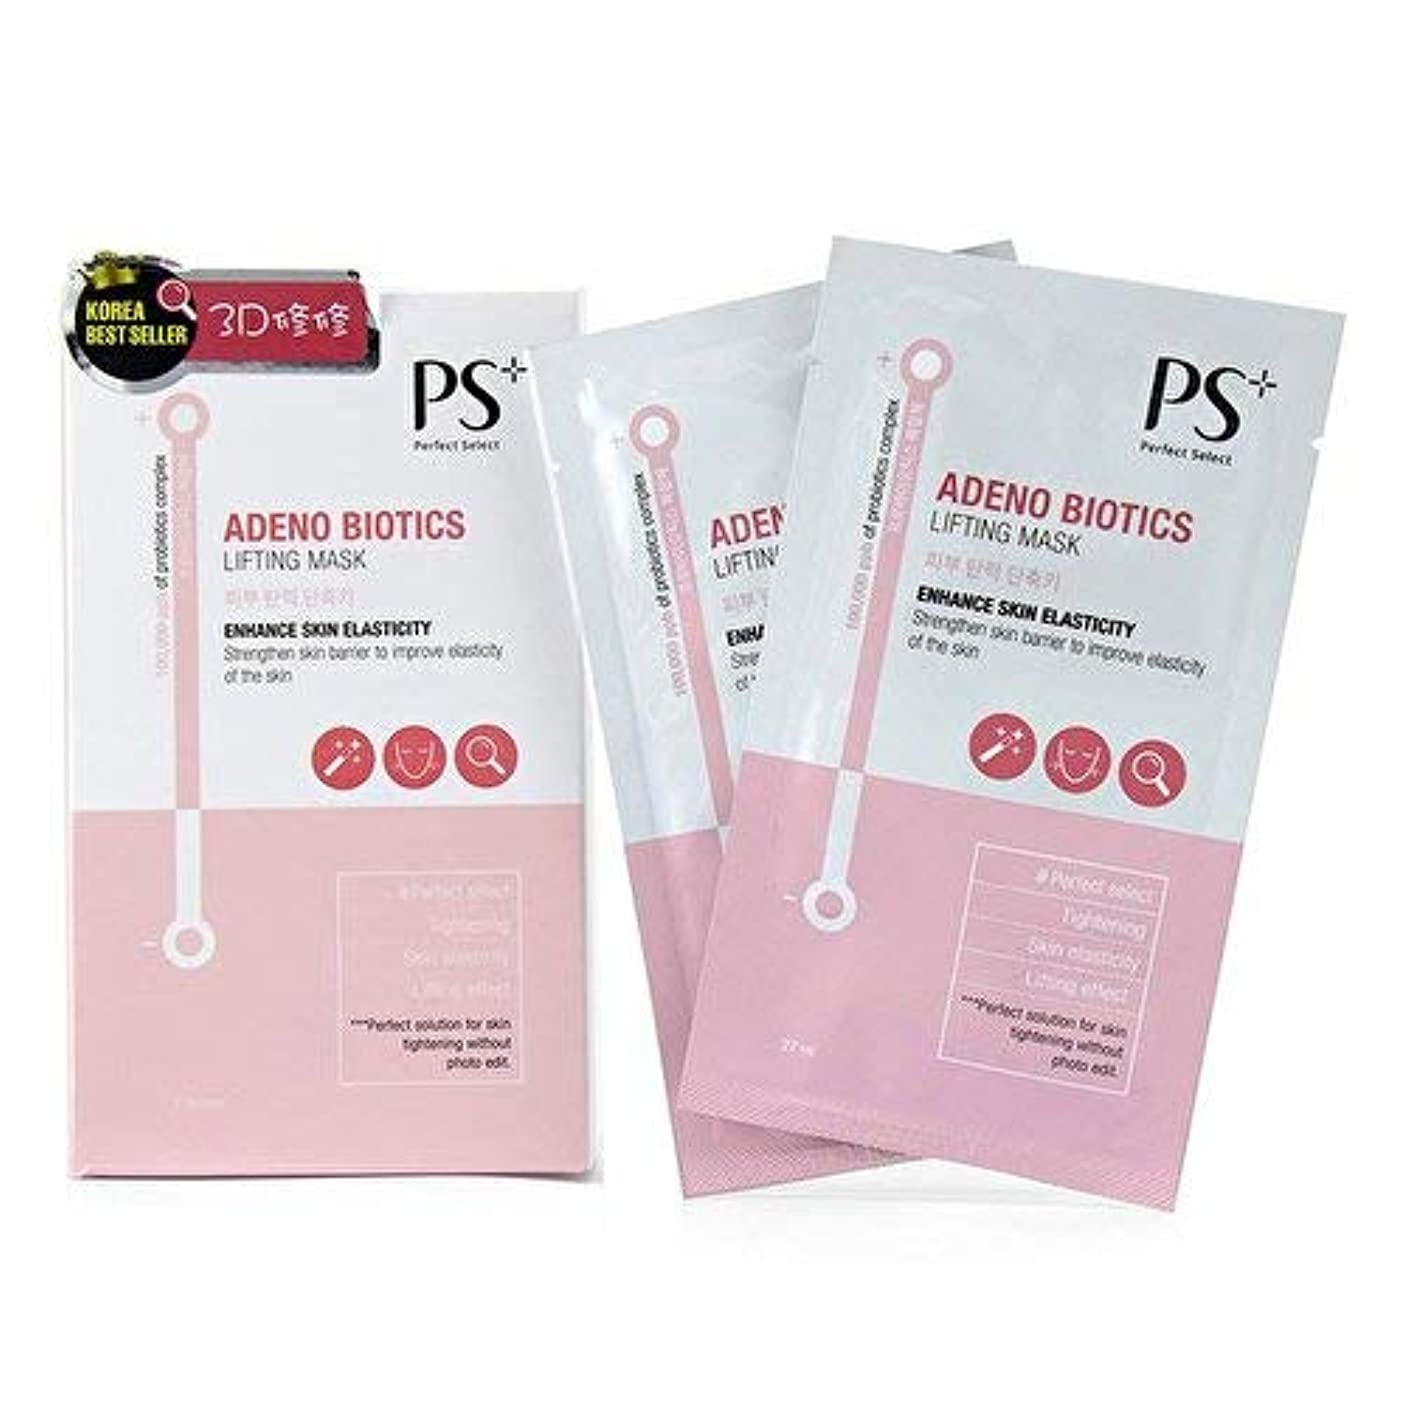 会議スクラップ小麦PS Perfect Select Adeno Biotics Lifting Mask - Enhance Skin Elasticity 7pcs並行輸入品